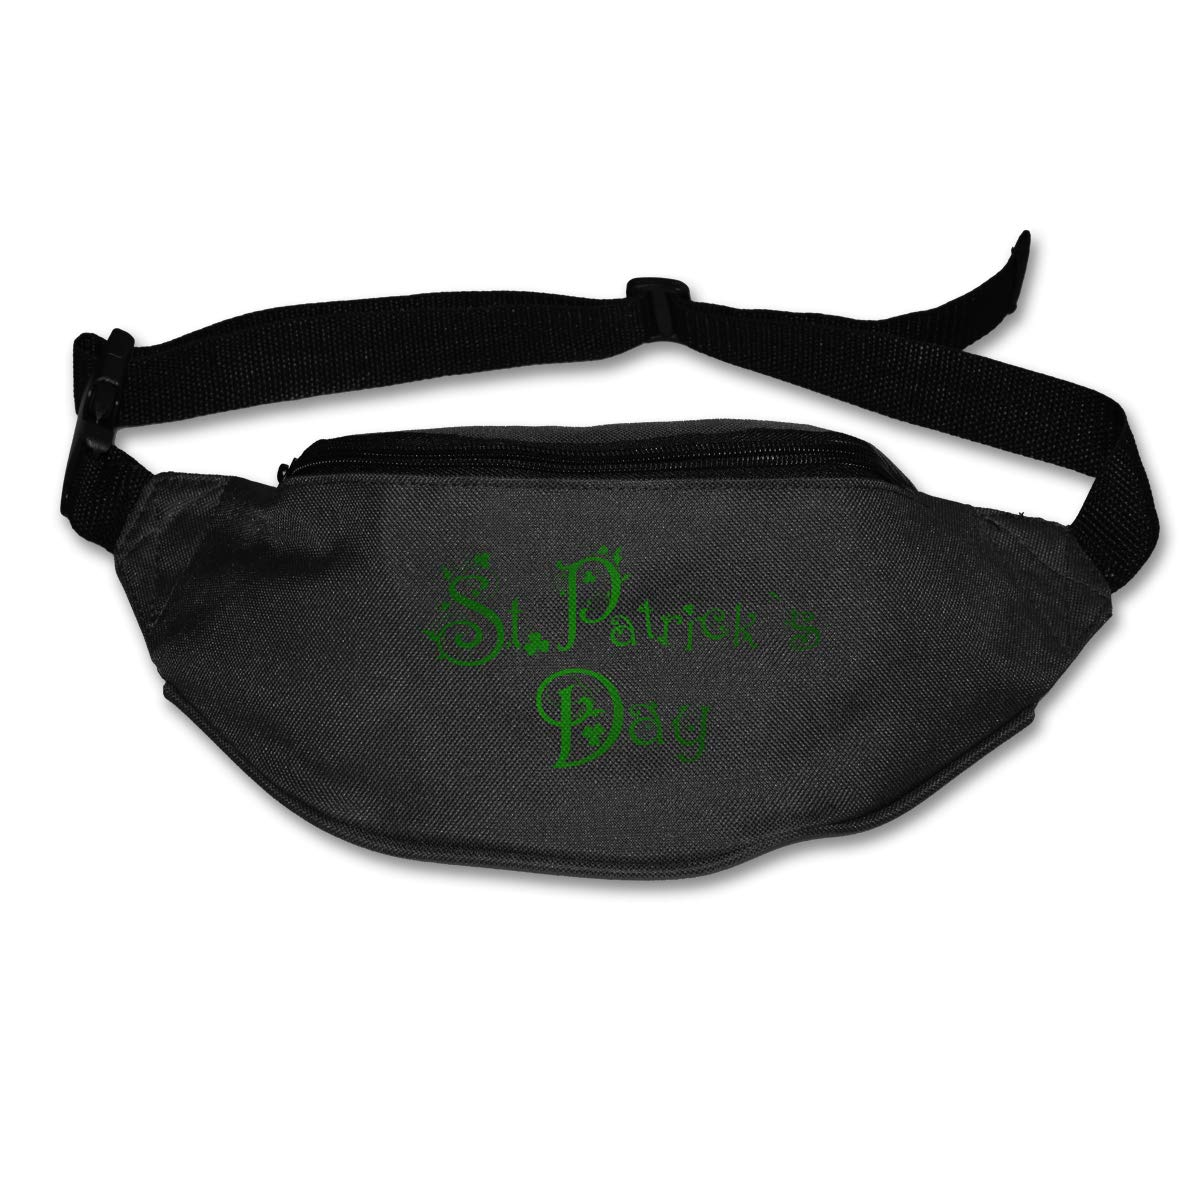 Curly Hair Dont Care Sport Waist Pack Fanny Pack Adjustable For Run